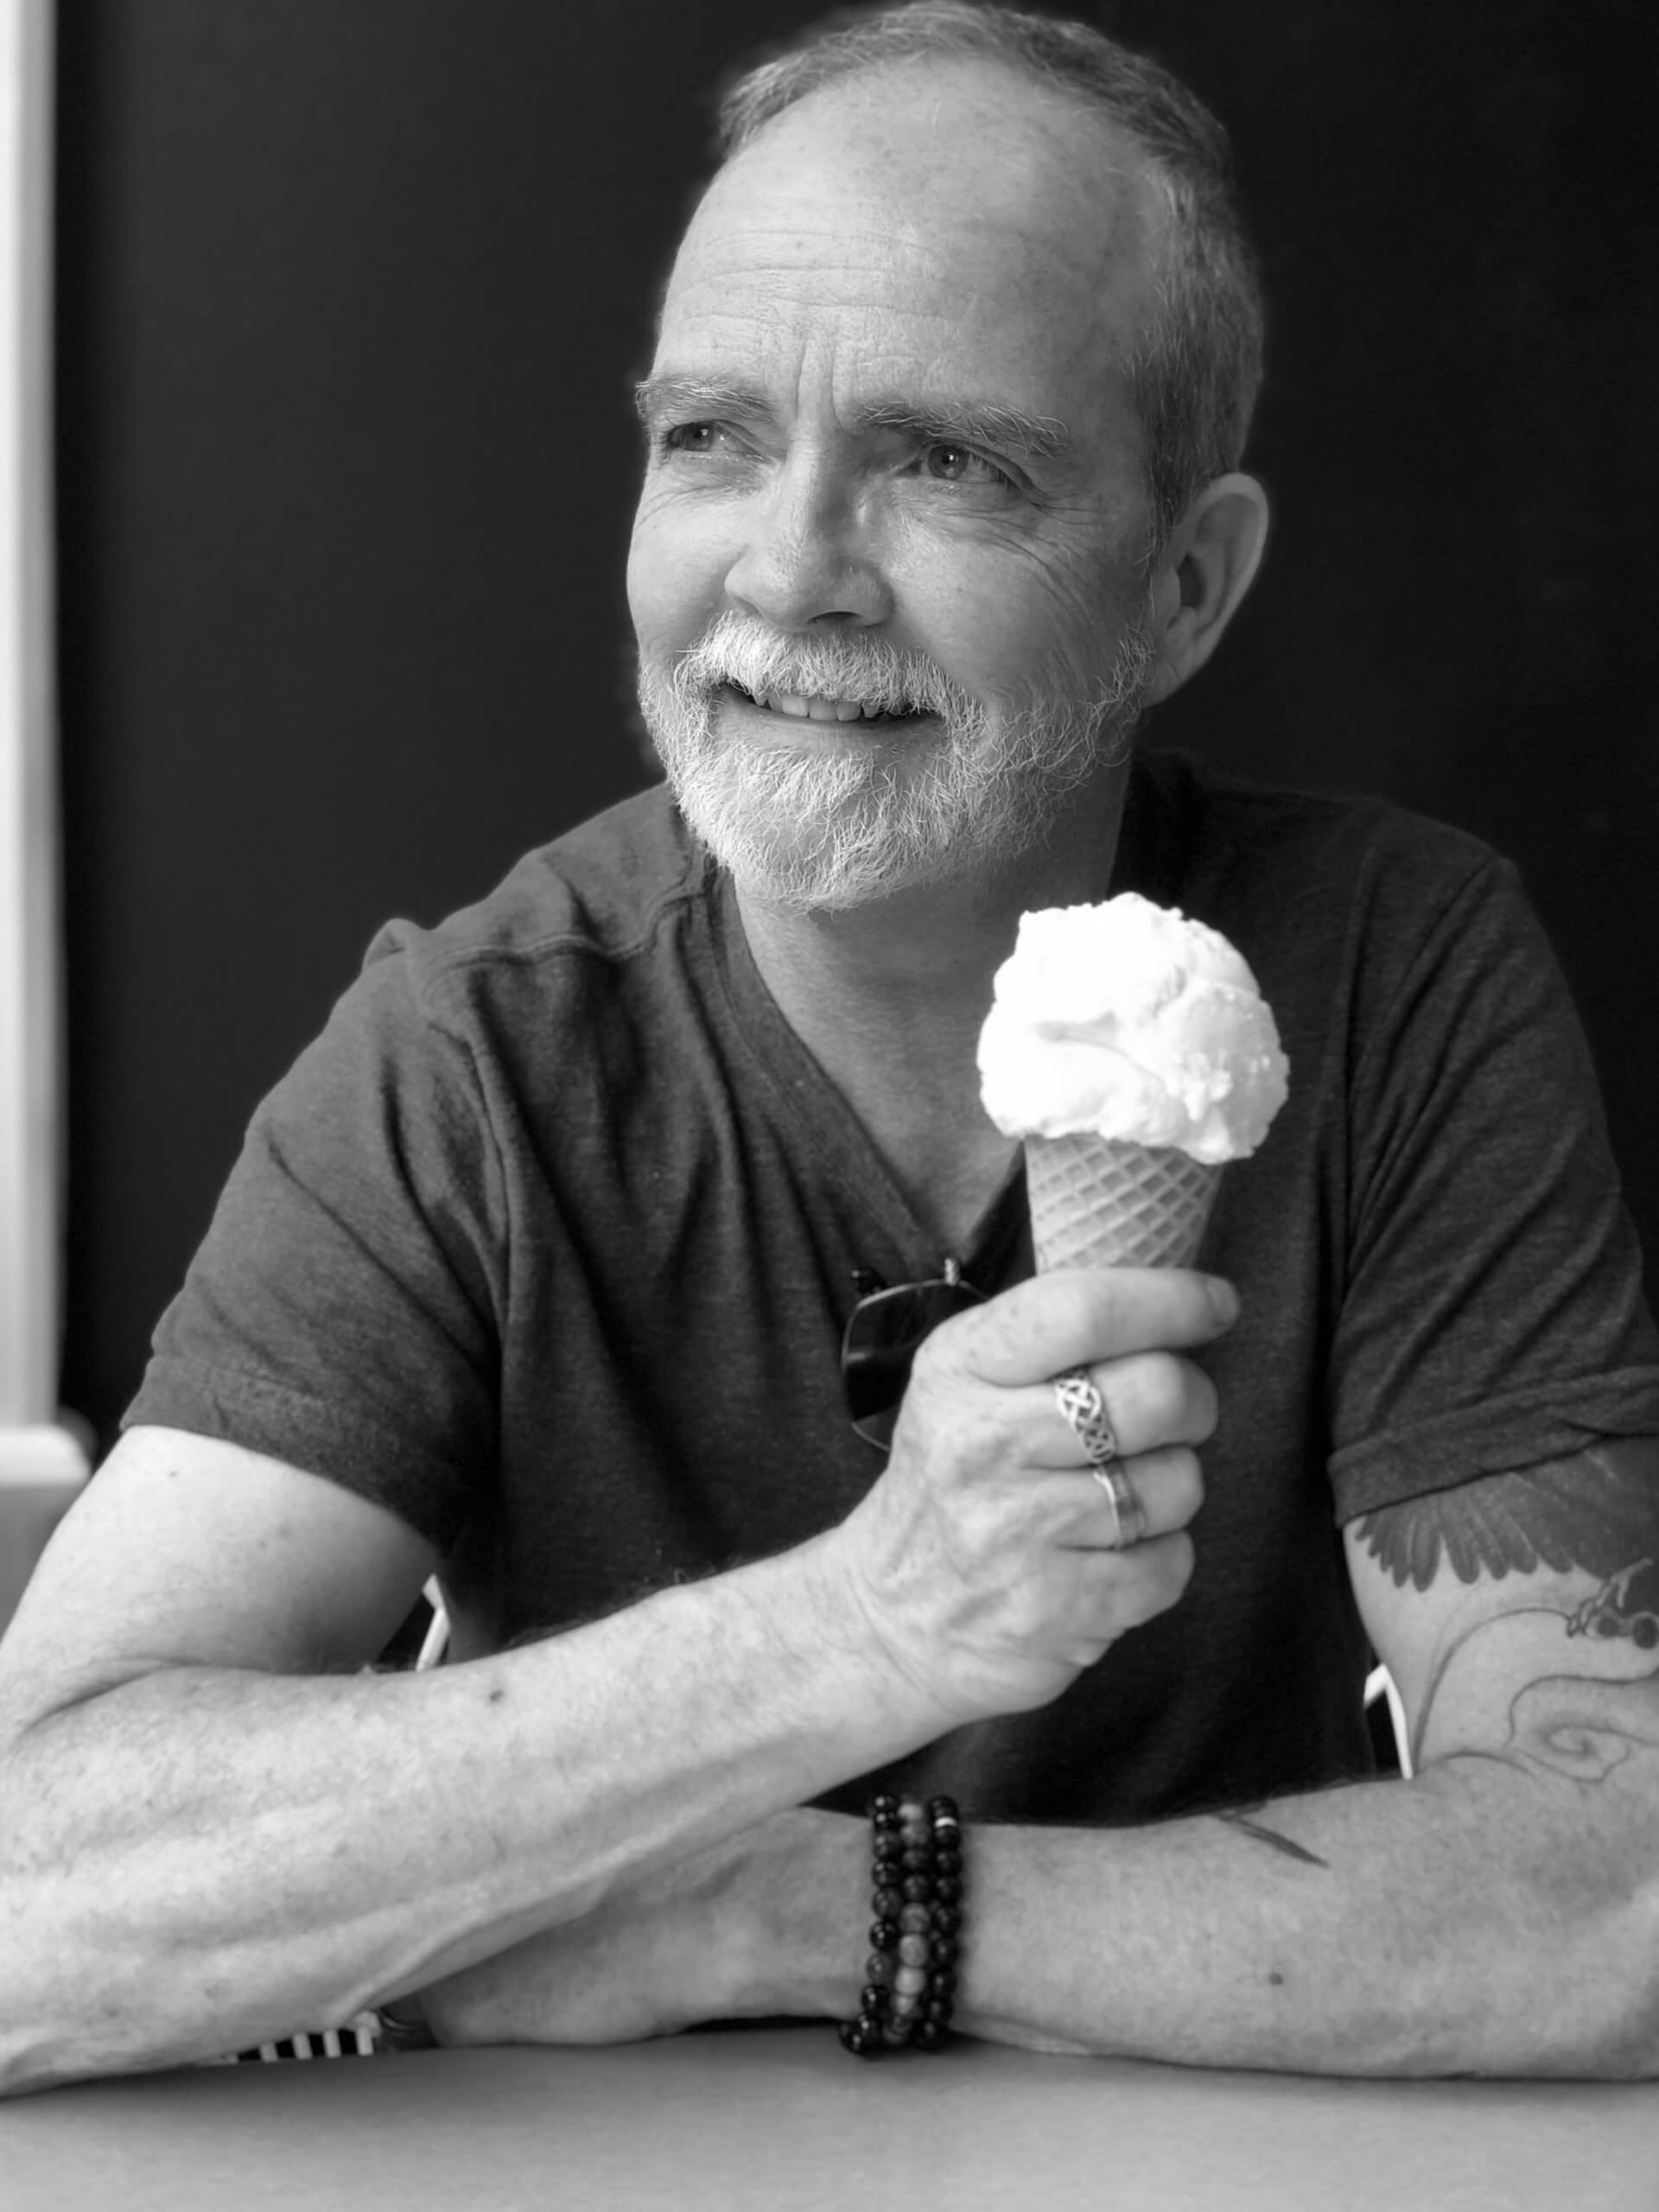 photo of david wilson in black and white holding an ice cream cone